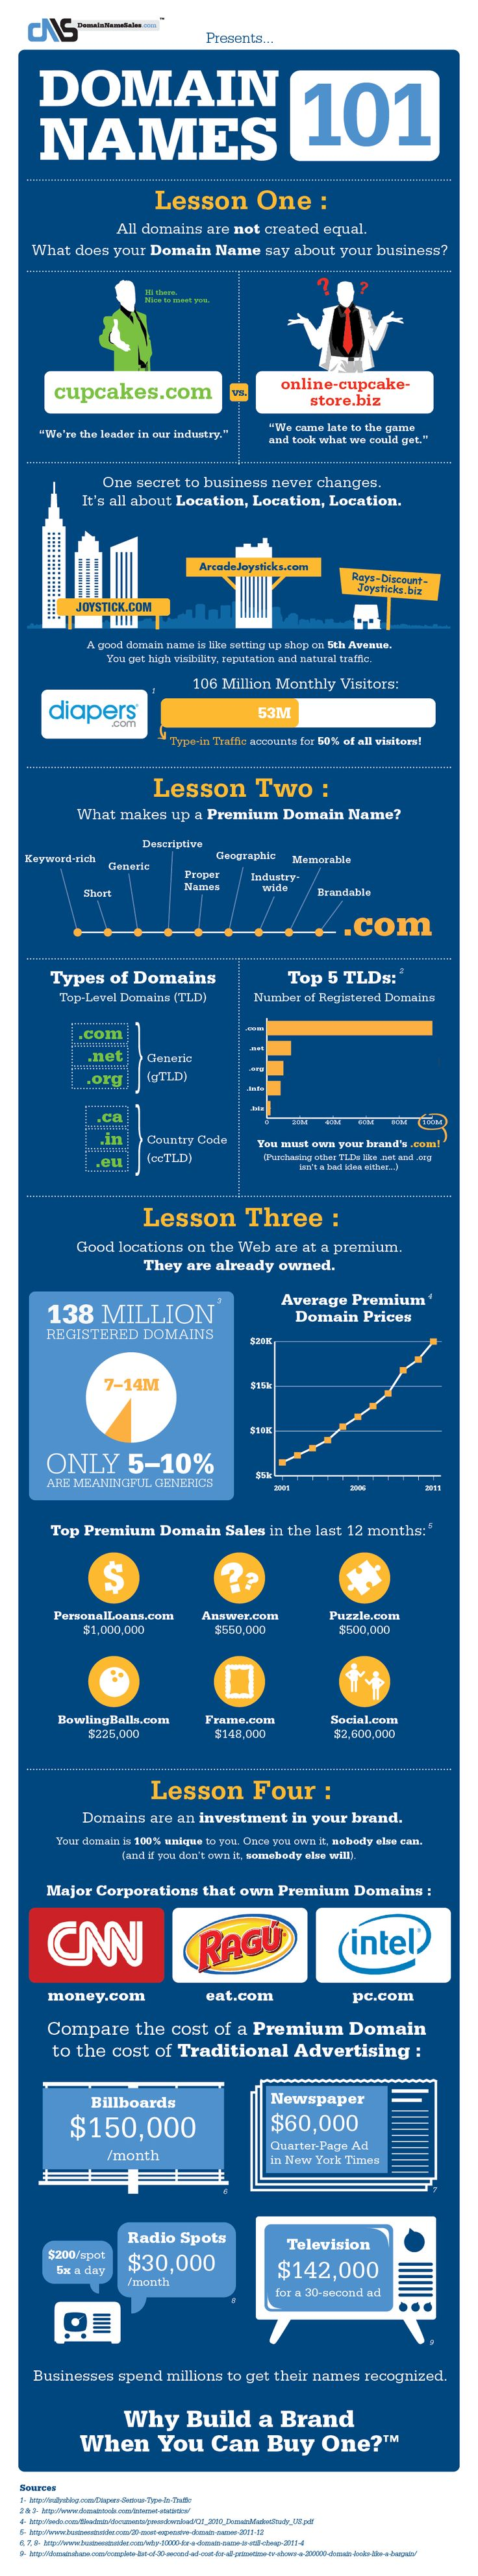 Domain Names 101: Your businesss most important marketing tool explained   Infographic by DomainNameSales.com